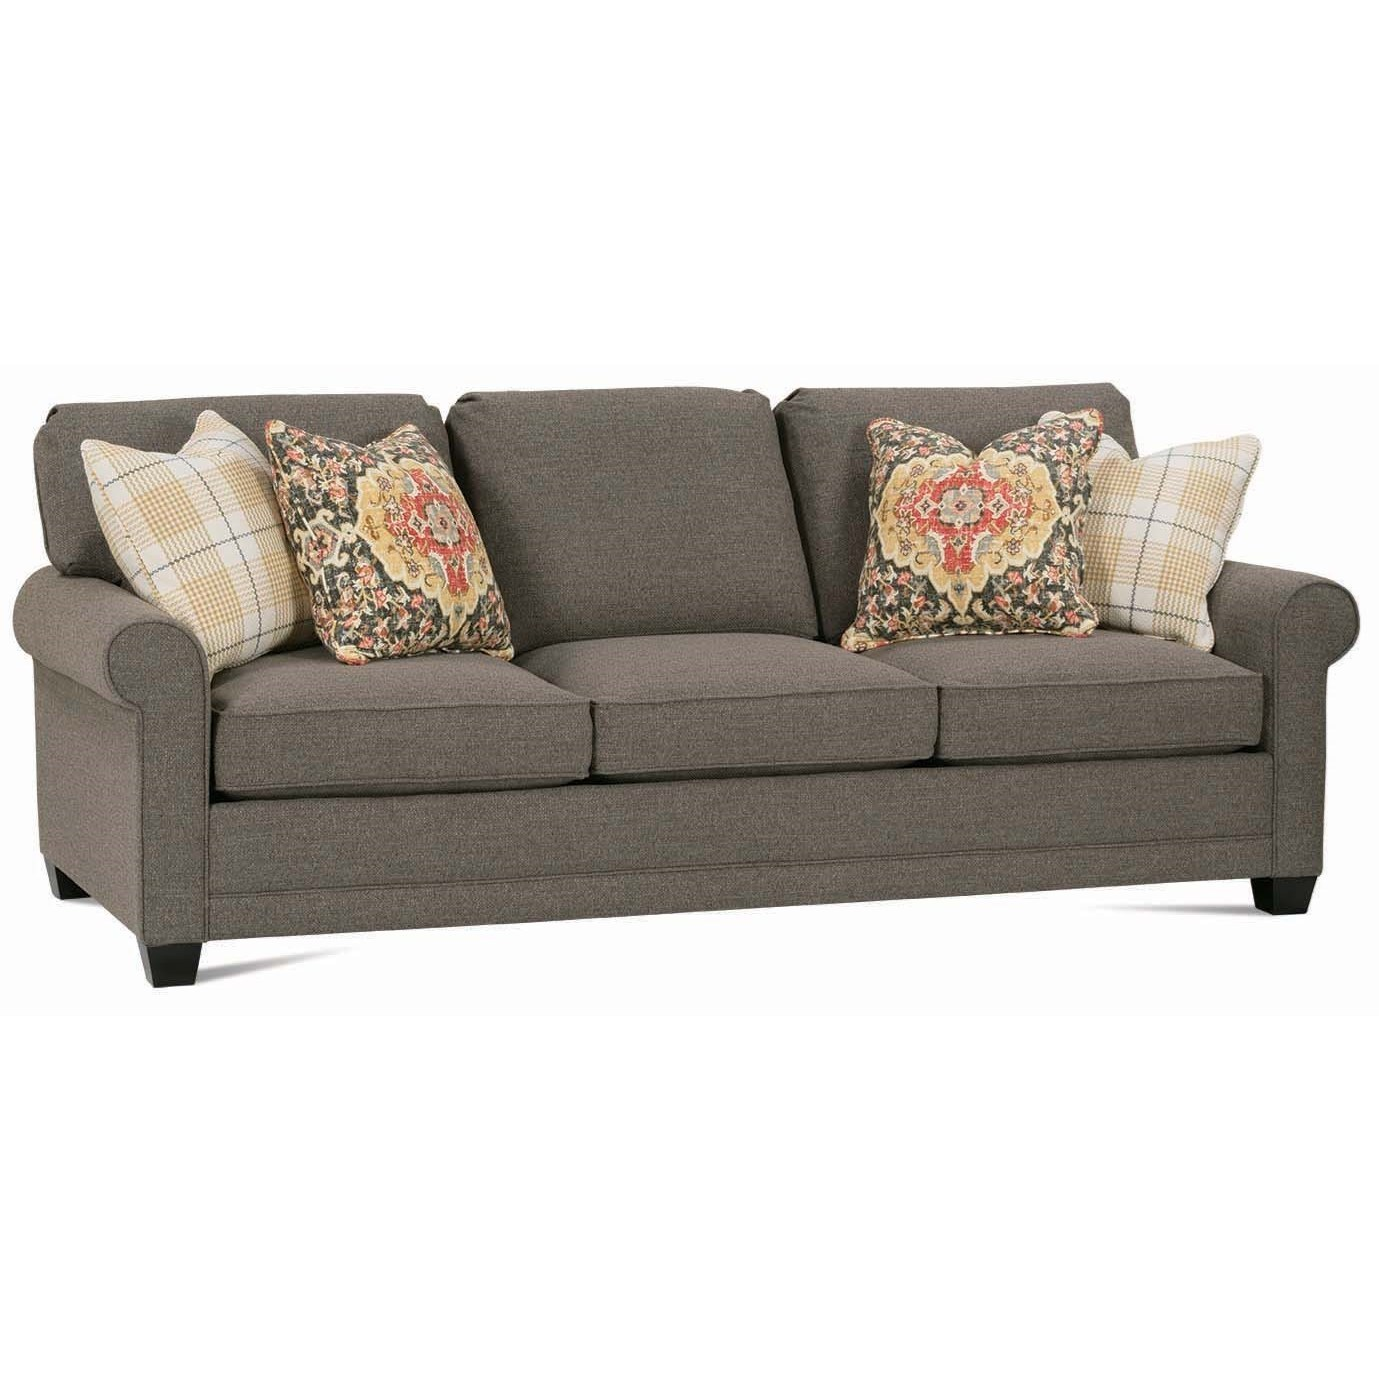 My Style I Customizable Sofa by Rowe at Baer's Furniture